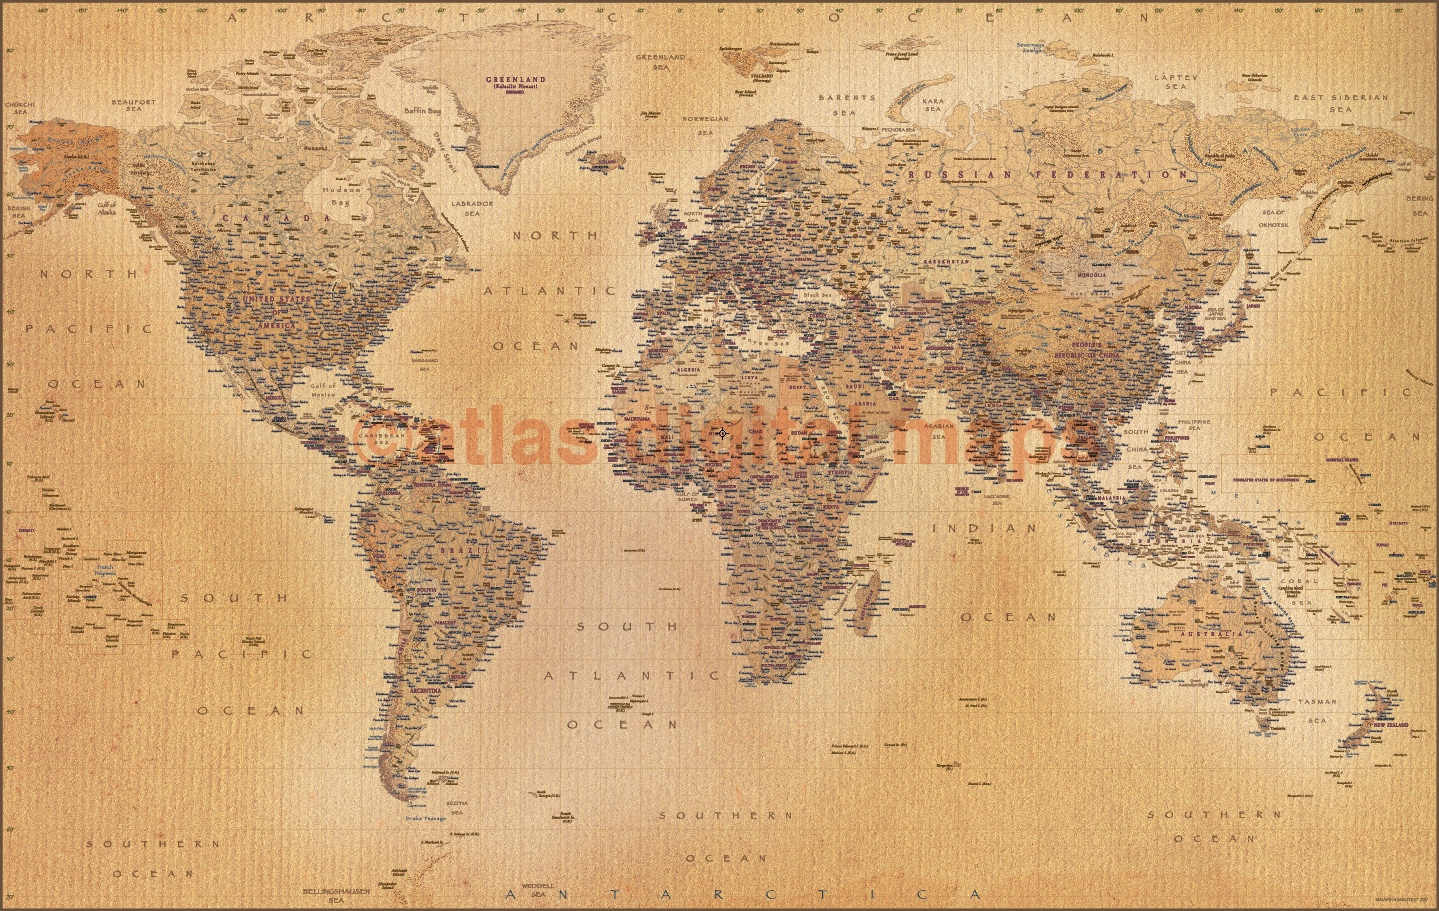 World wall map vinyl print tan antique style political relief 60 x 38 vinyl antique style tan world map large size 60w x 38d gumiabroncs Choice Image